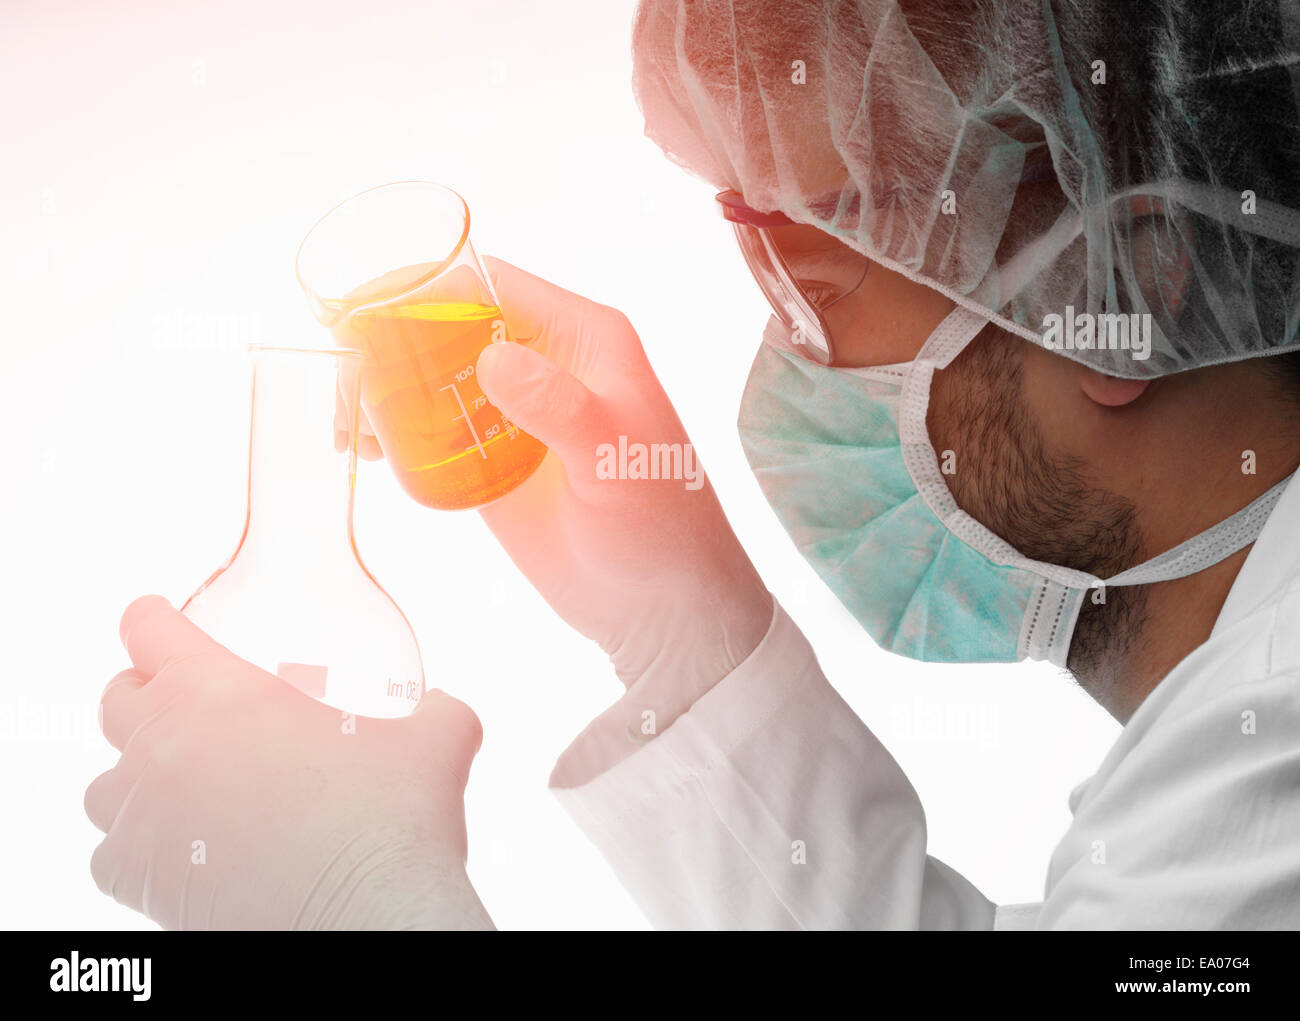 Chemist pouring liquid from beaker into flask Stock Photo